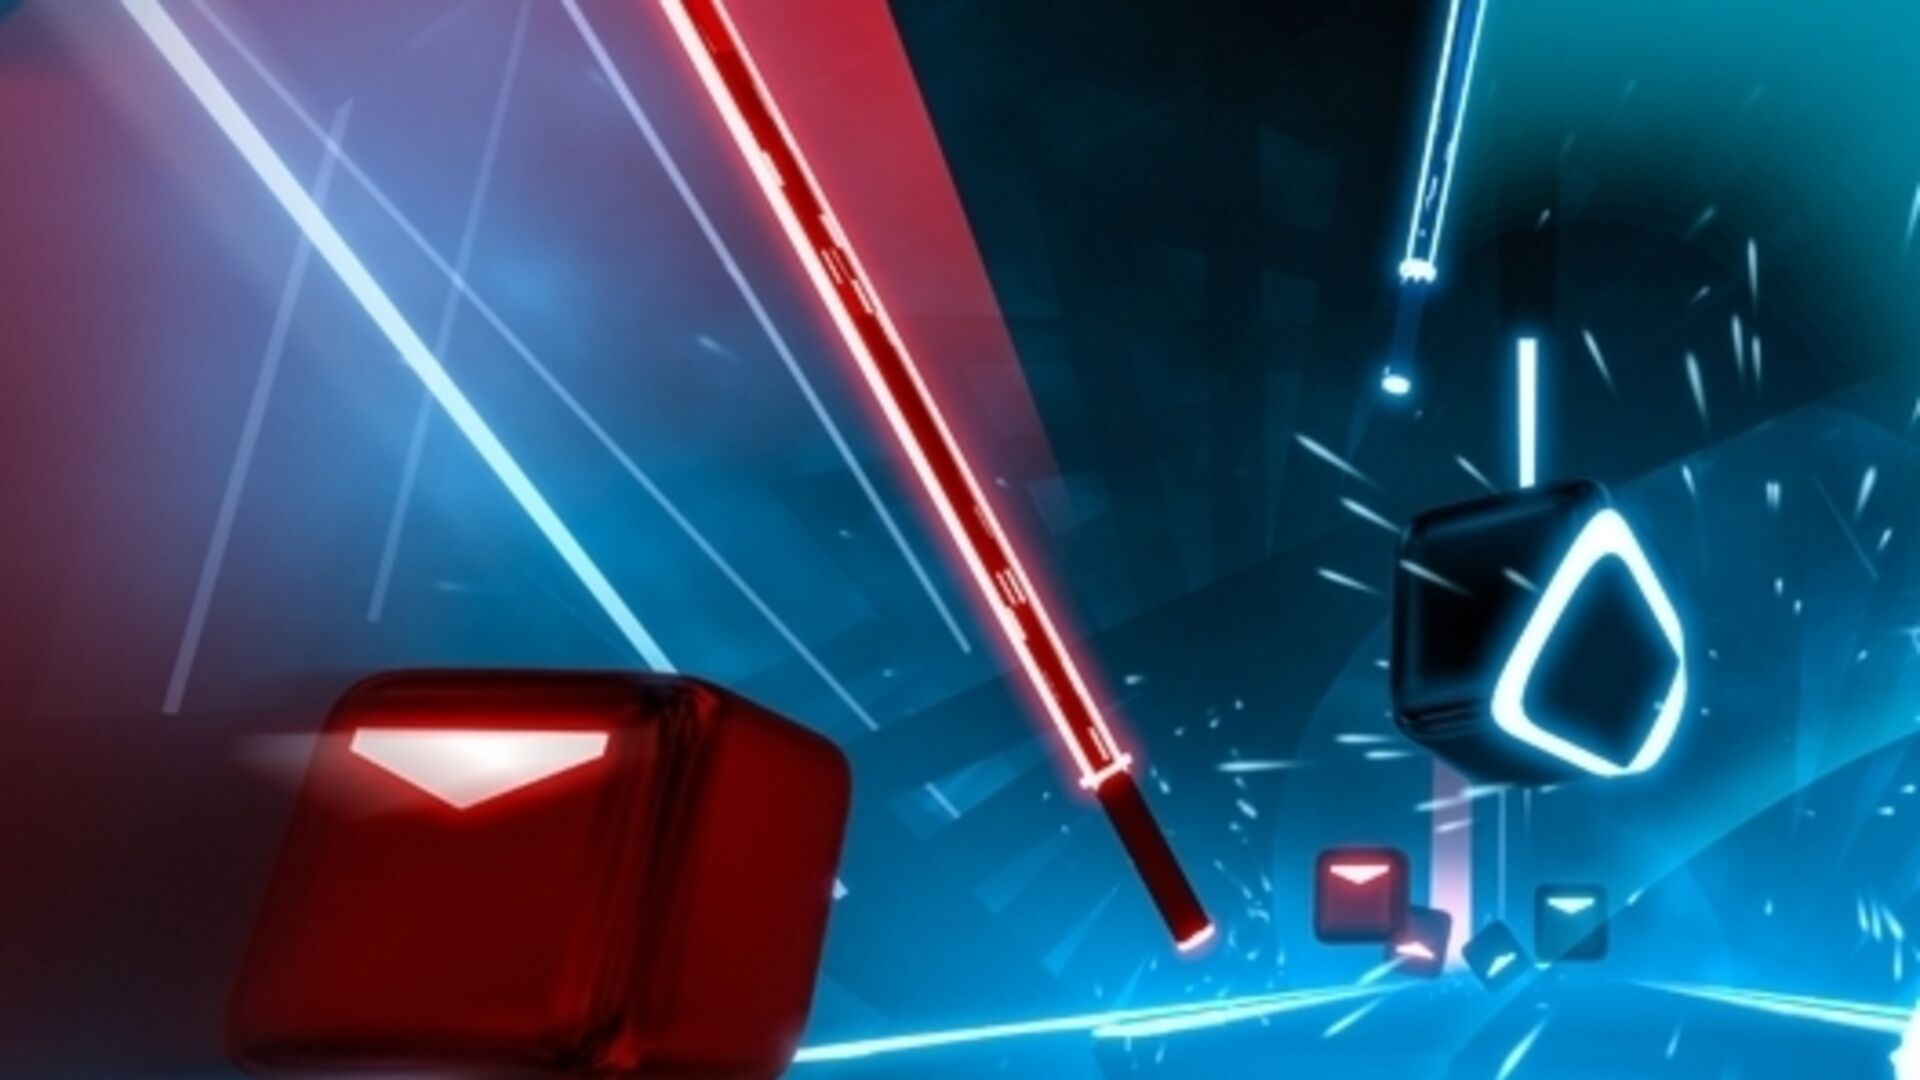 Superb VR rhythm game Beat Saber gets its first paid music